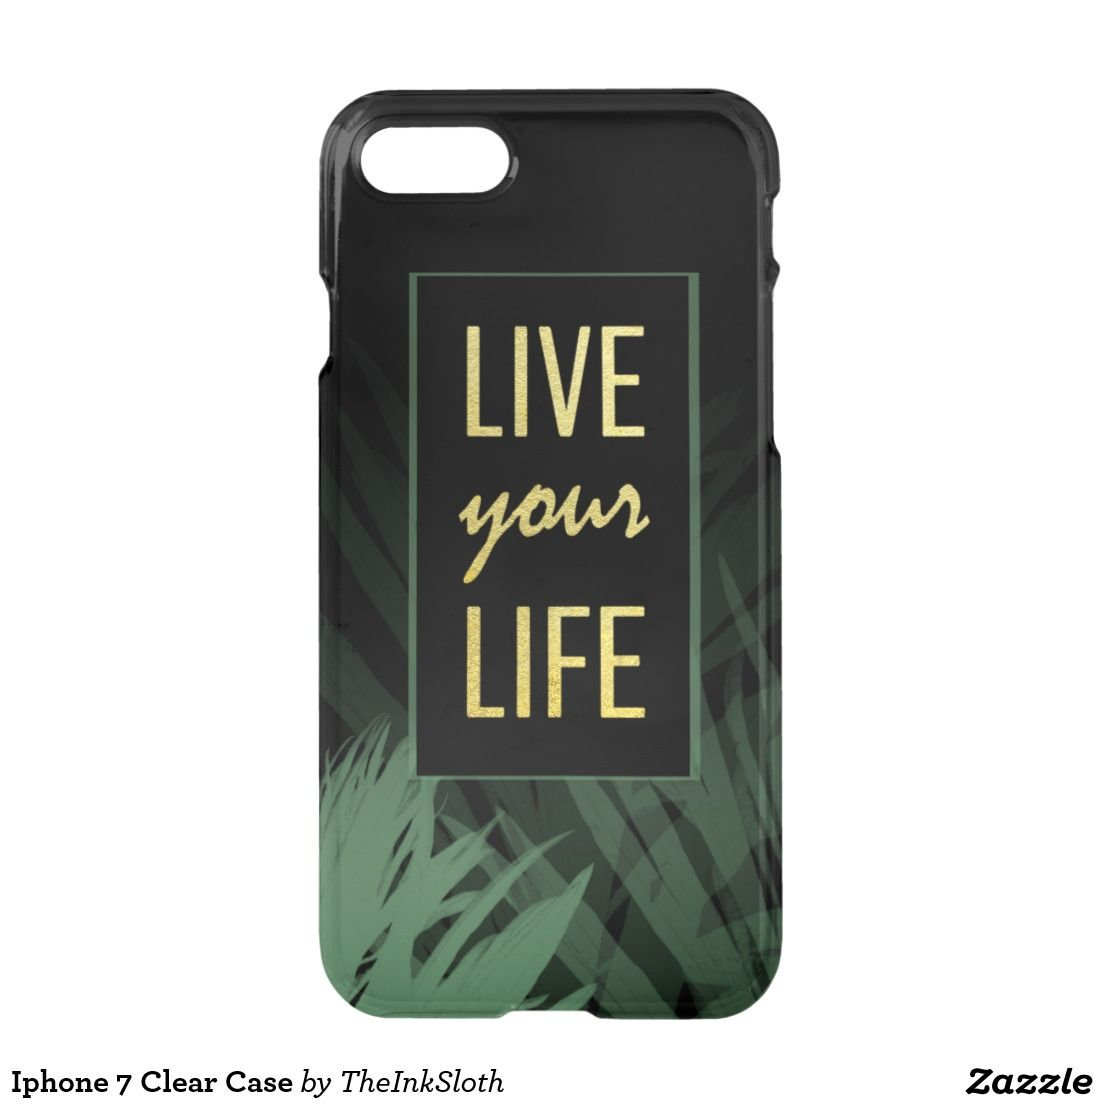 #Iphone #iphone7 #Clear #Case #phonecase #phone #mobile #decorativecase #goldtext #goldfont #goldtype #typography #quote #sayings